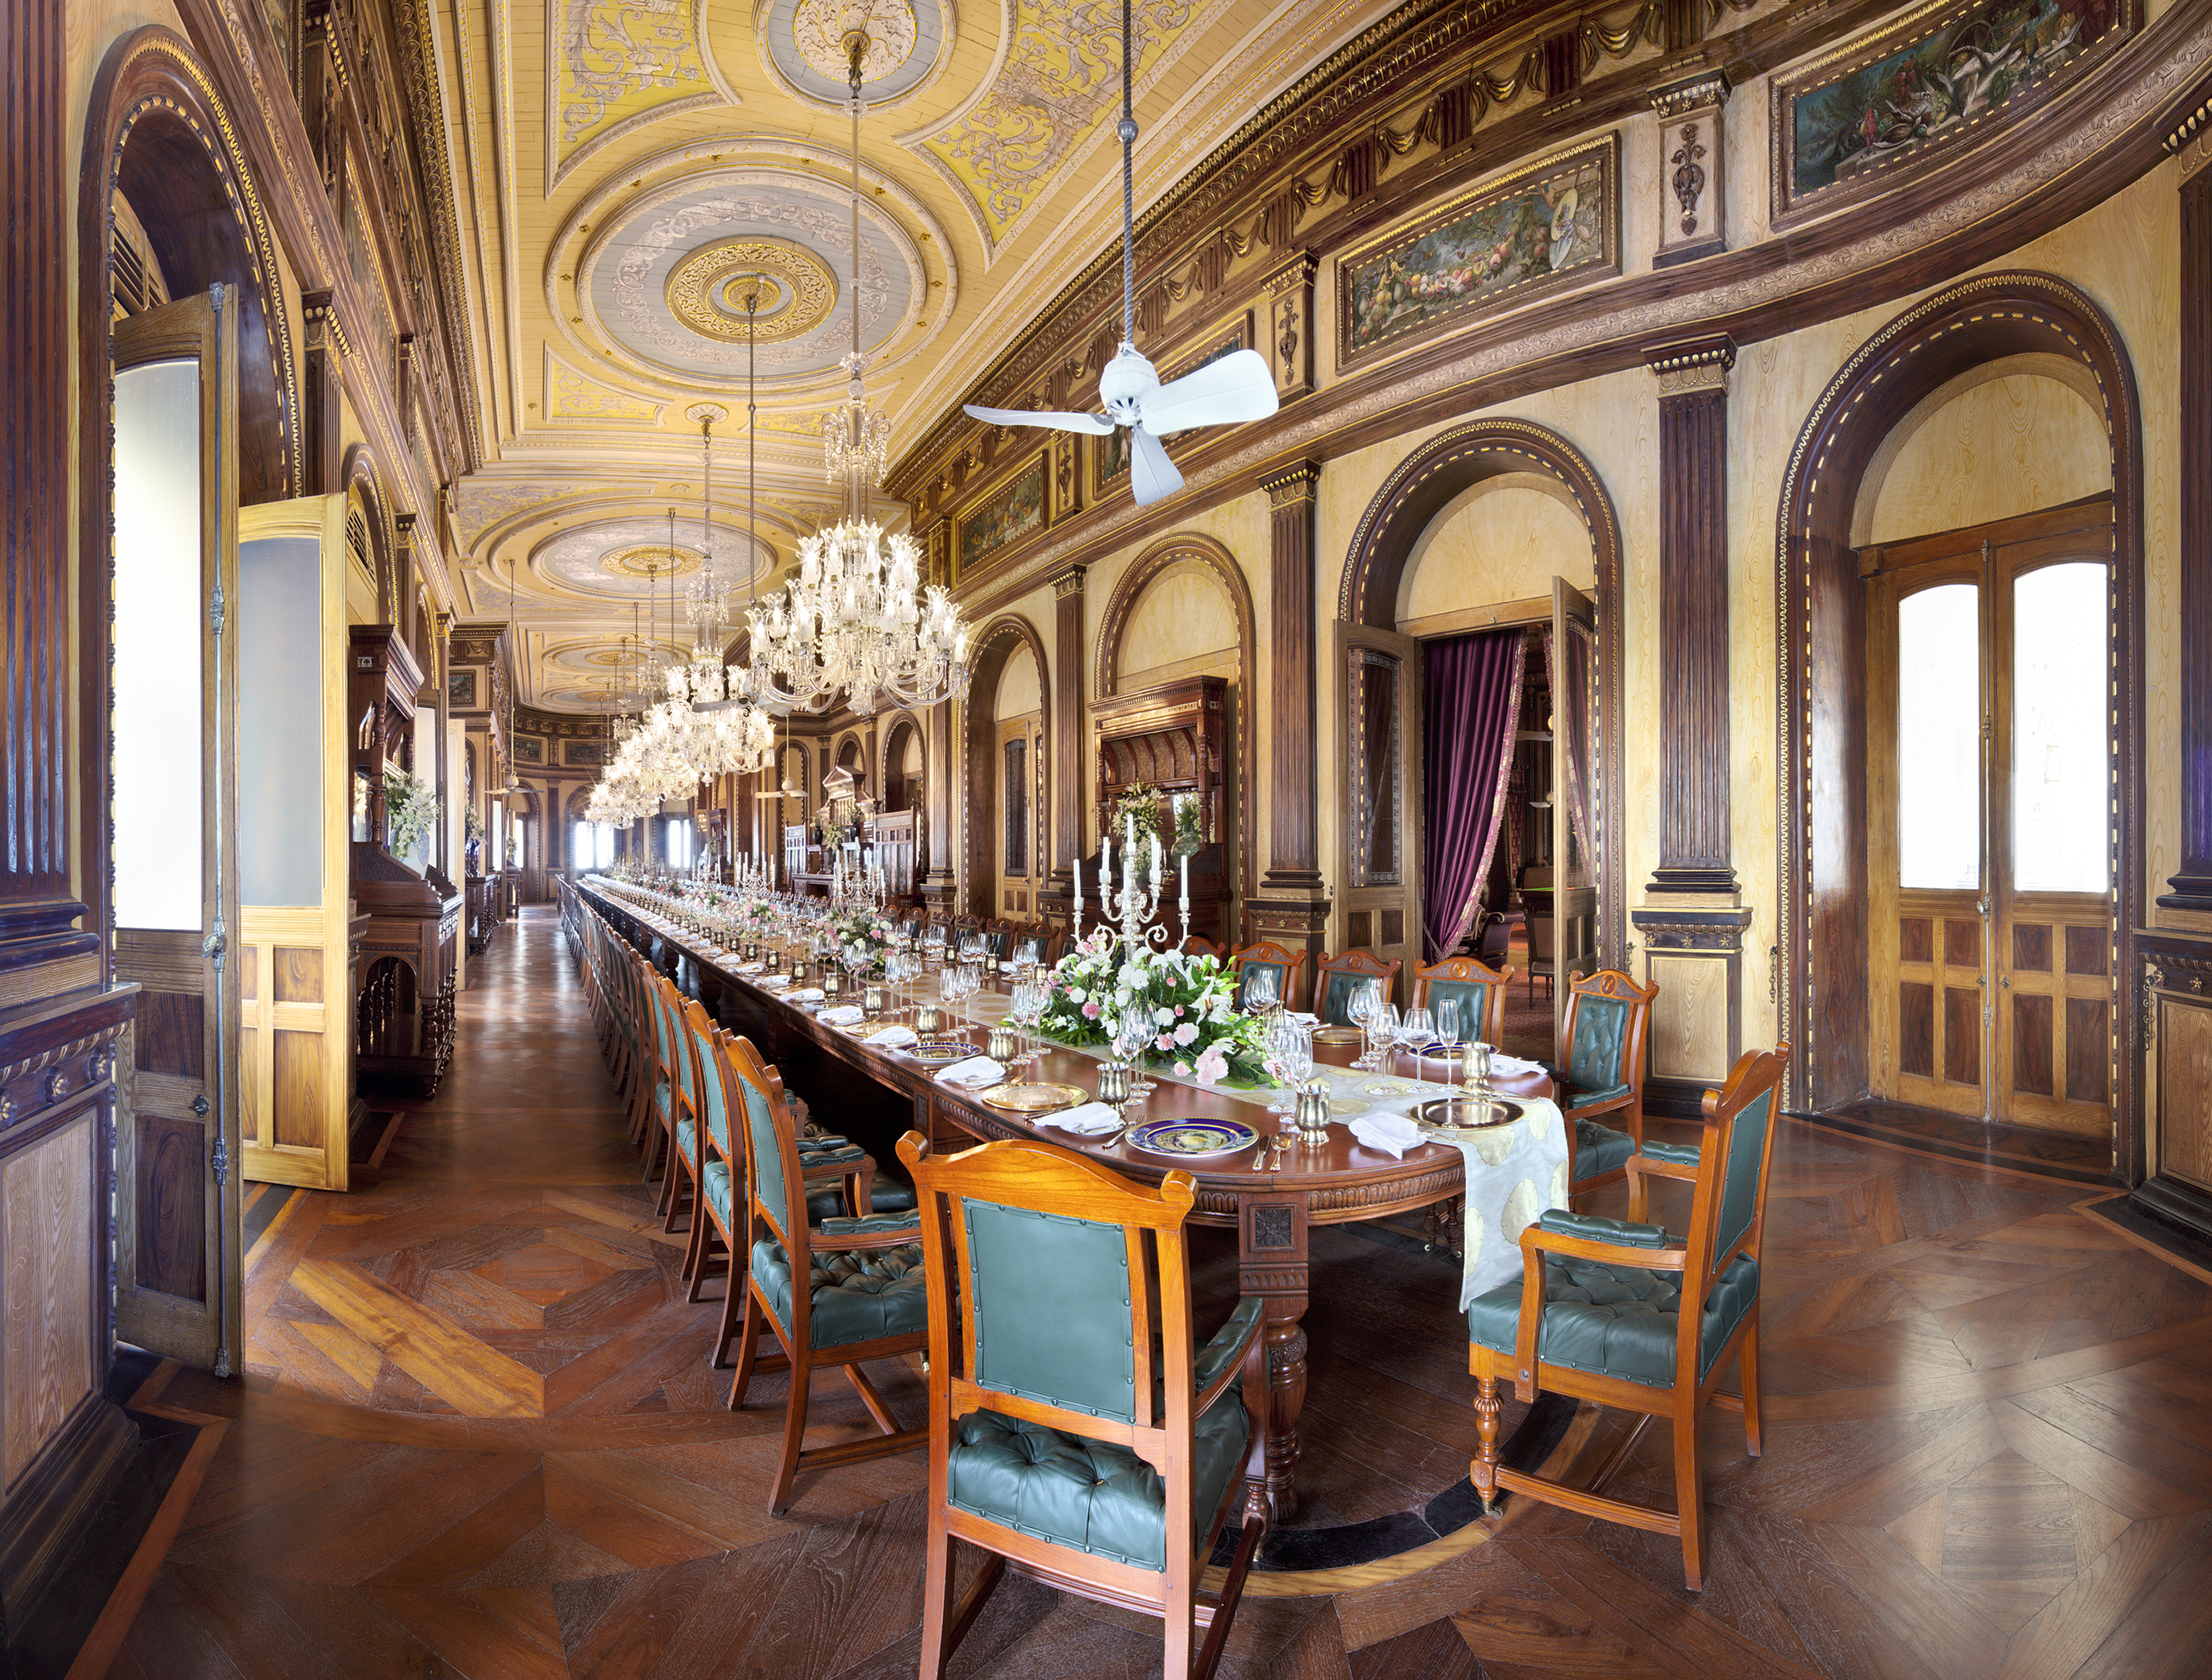 Restaurant Furniture In Hyderabad : Top ten things to love at taj falaknuma palace the tiny